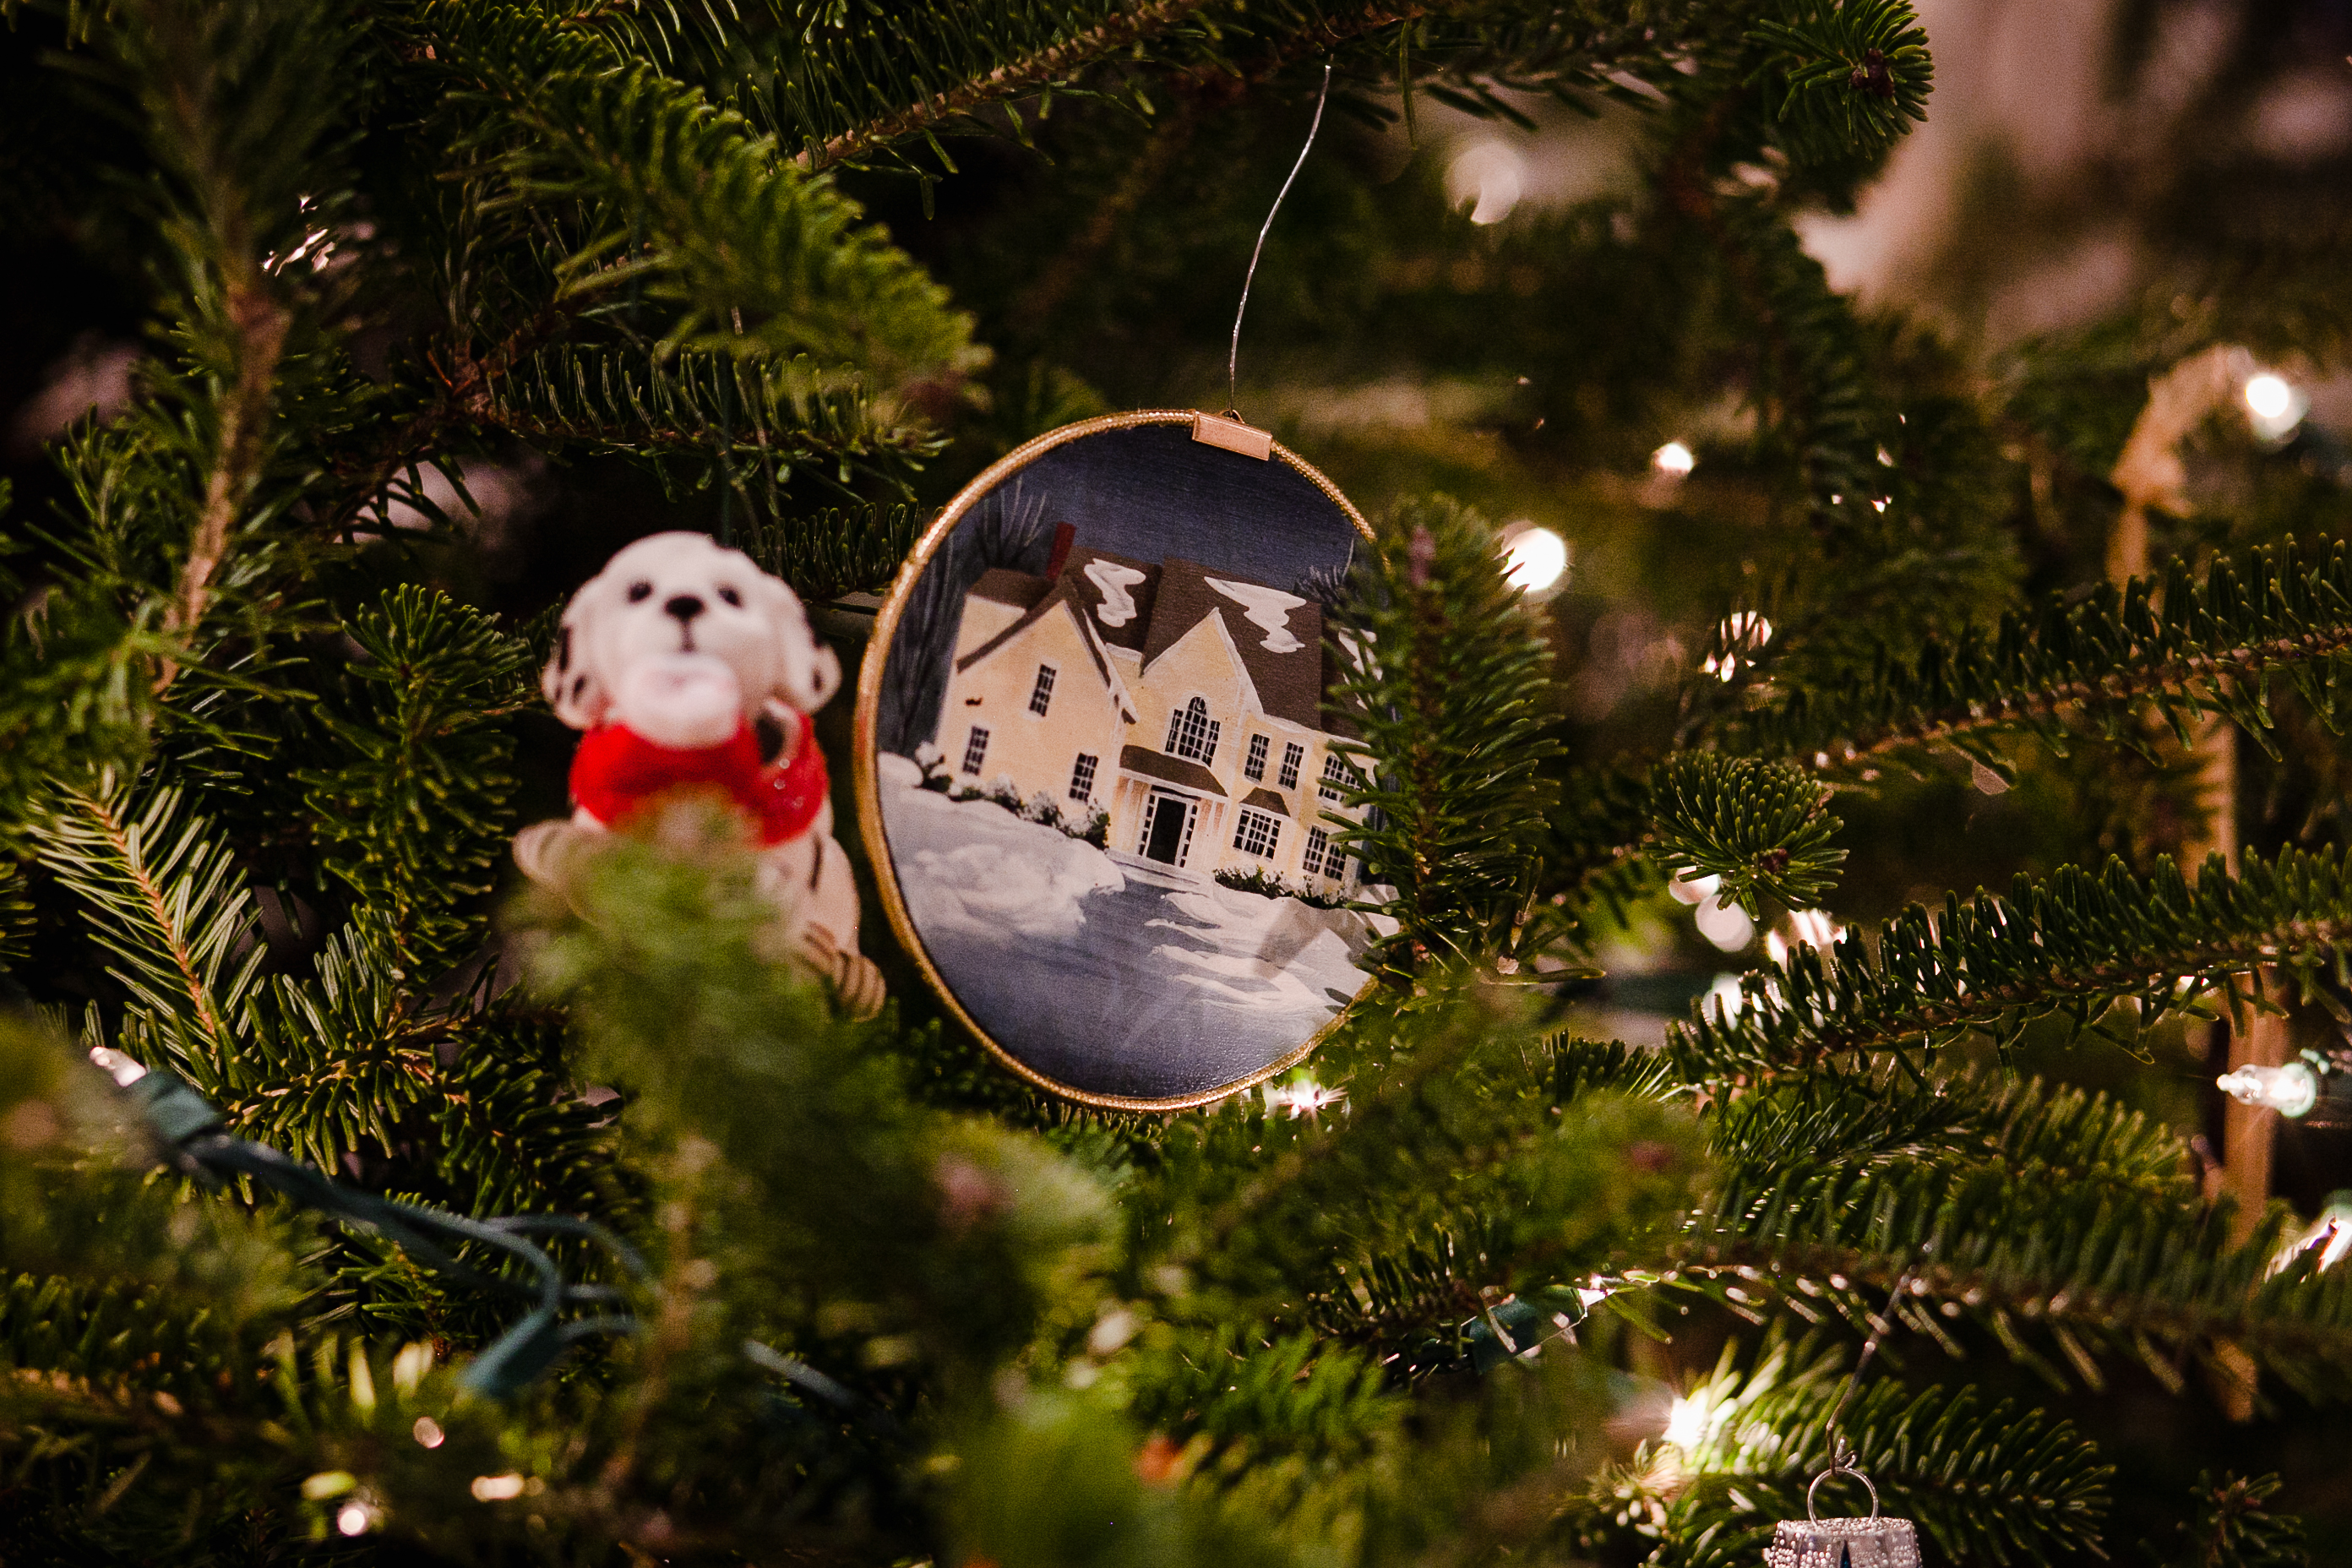 ornament with yellow house and snow